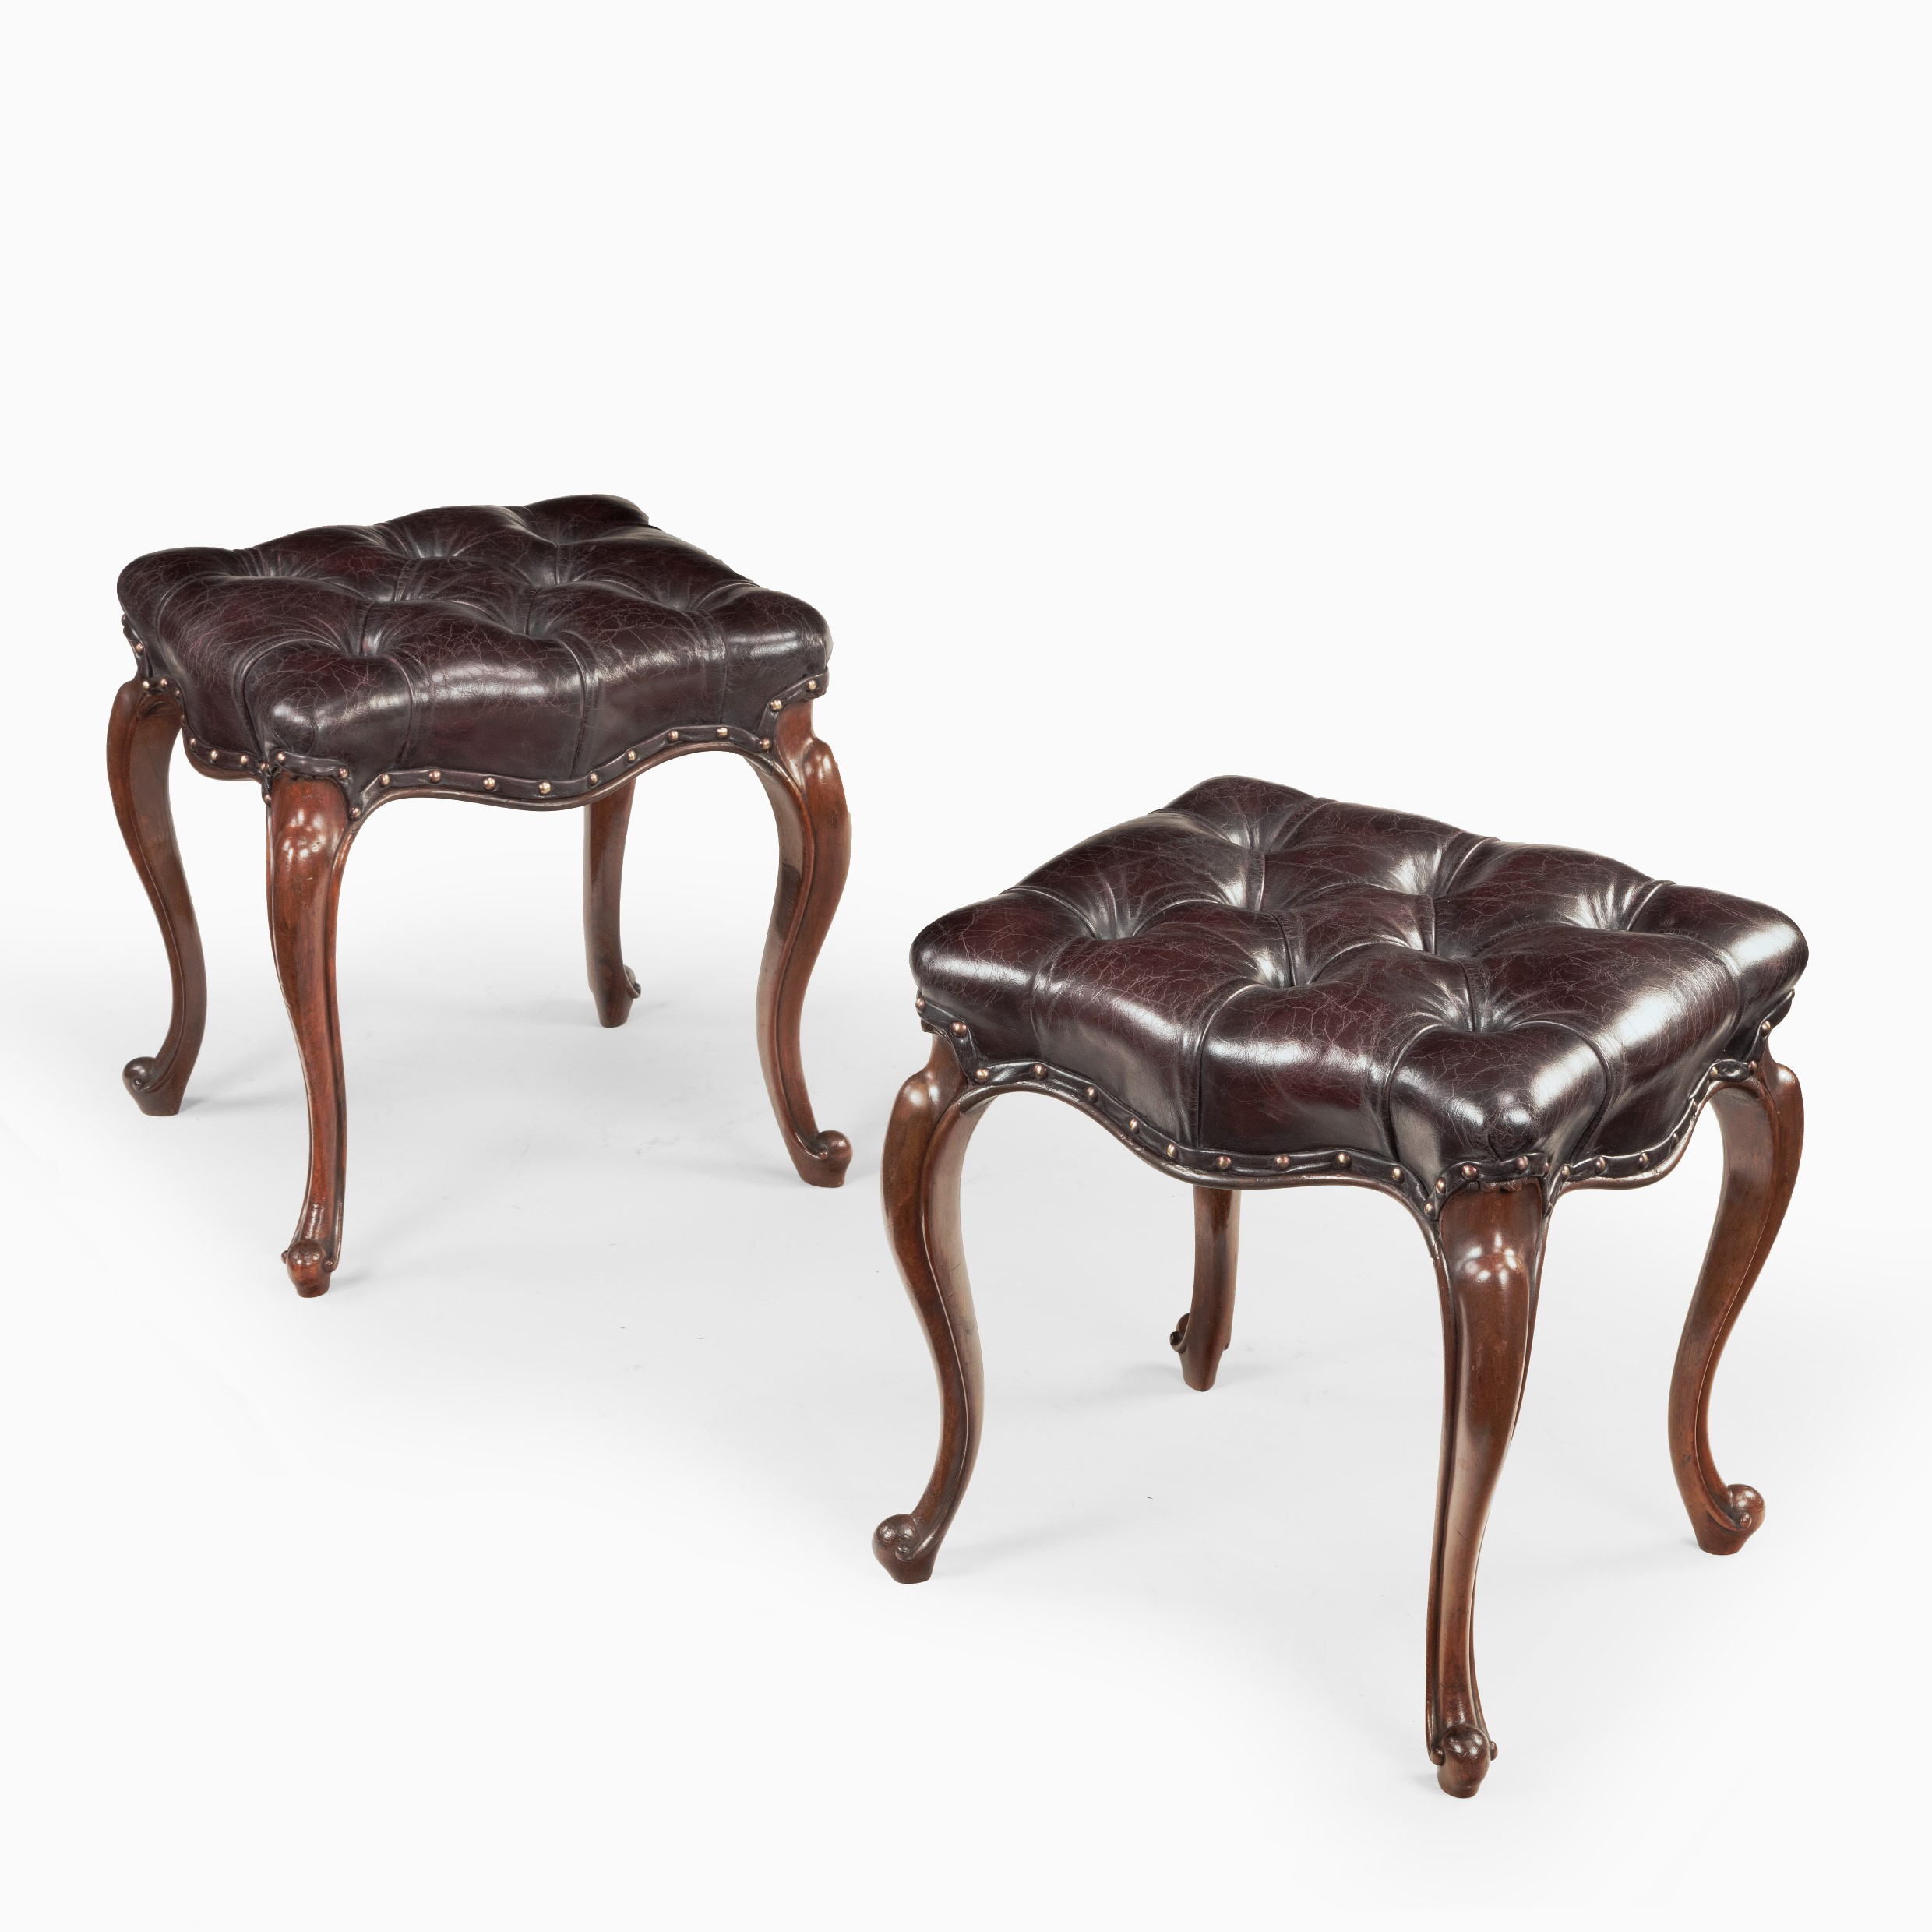 Pair of mid-Victorian rosewood stools